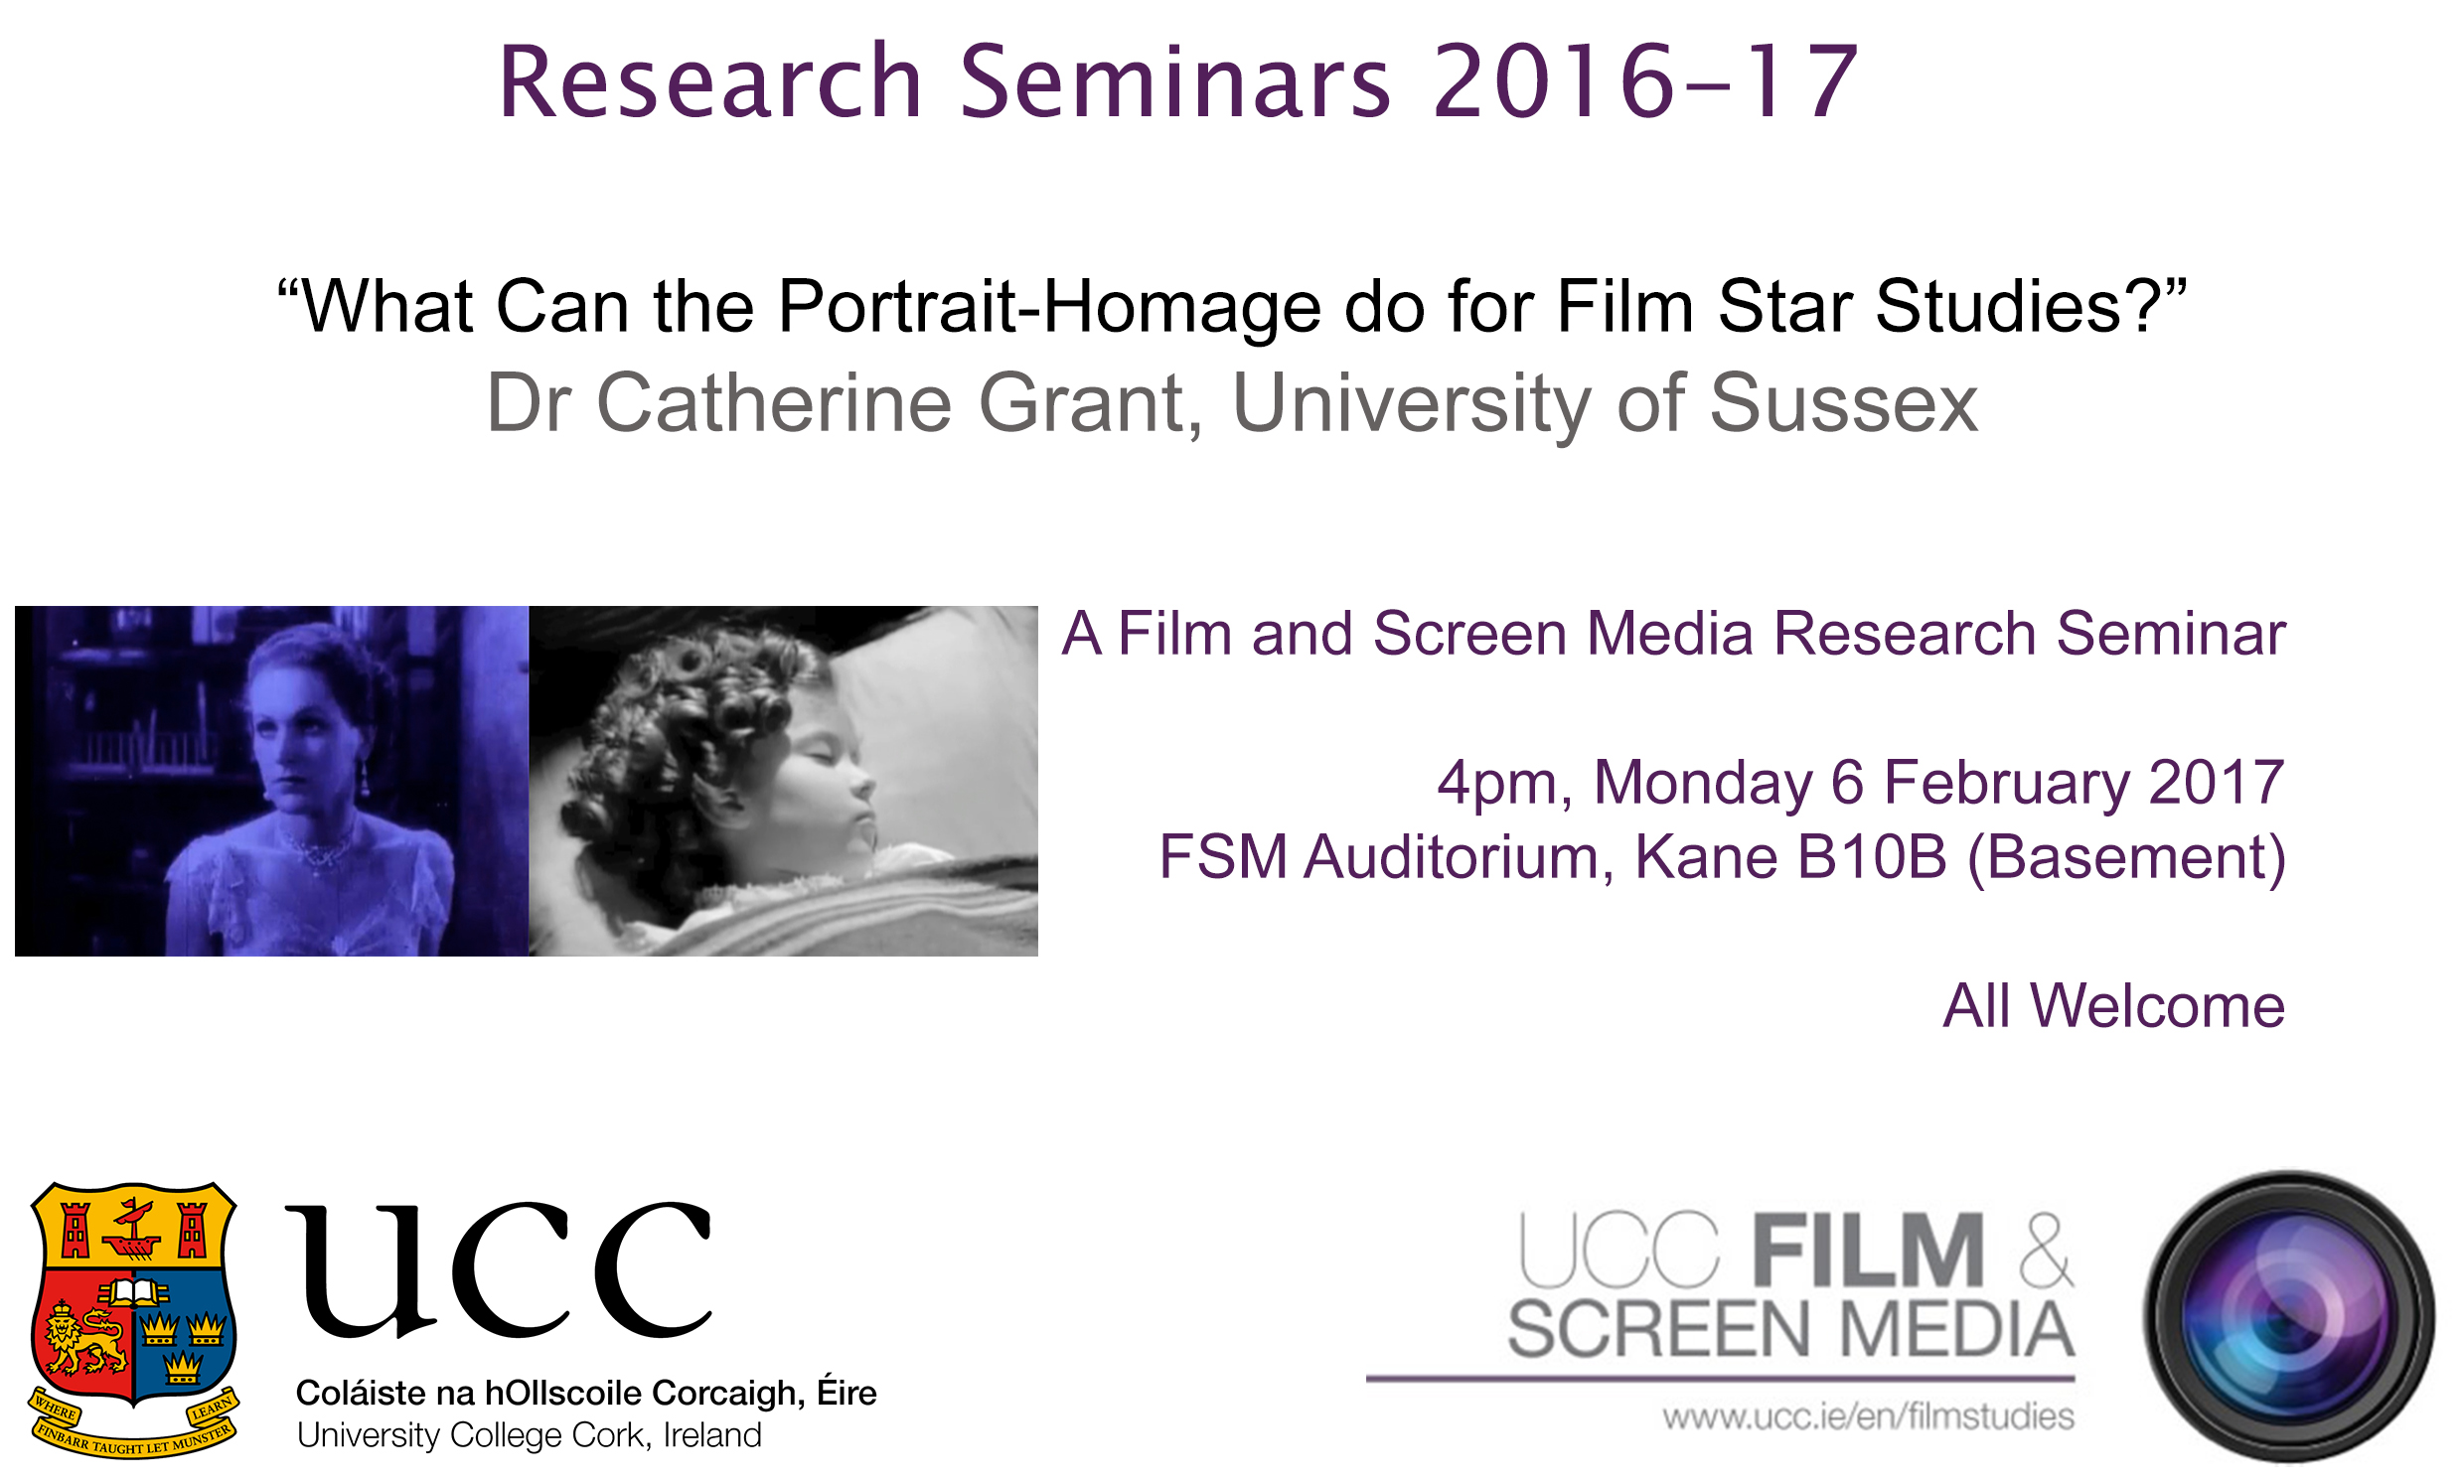 Film and Screen Media Research Seminar